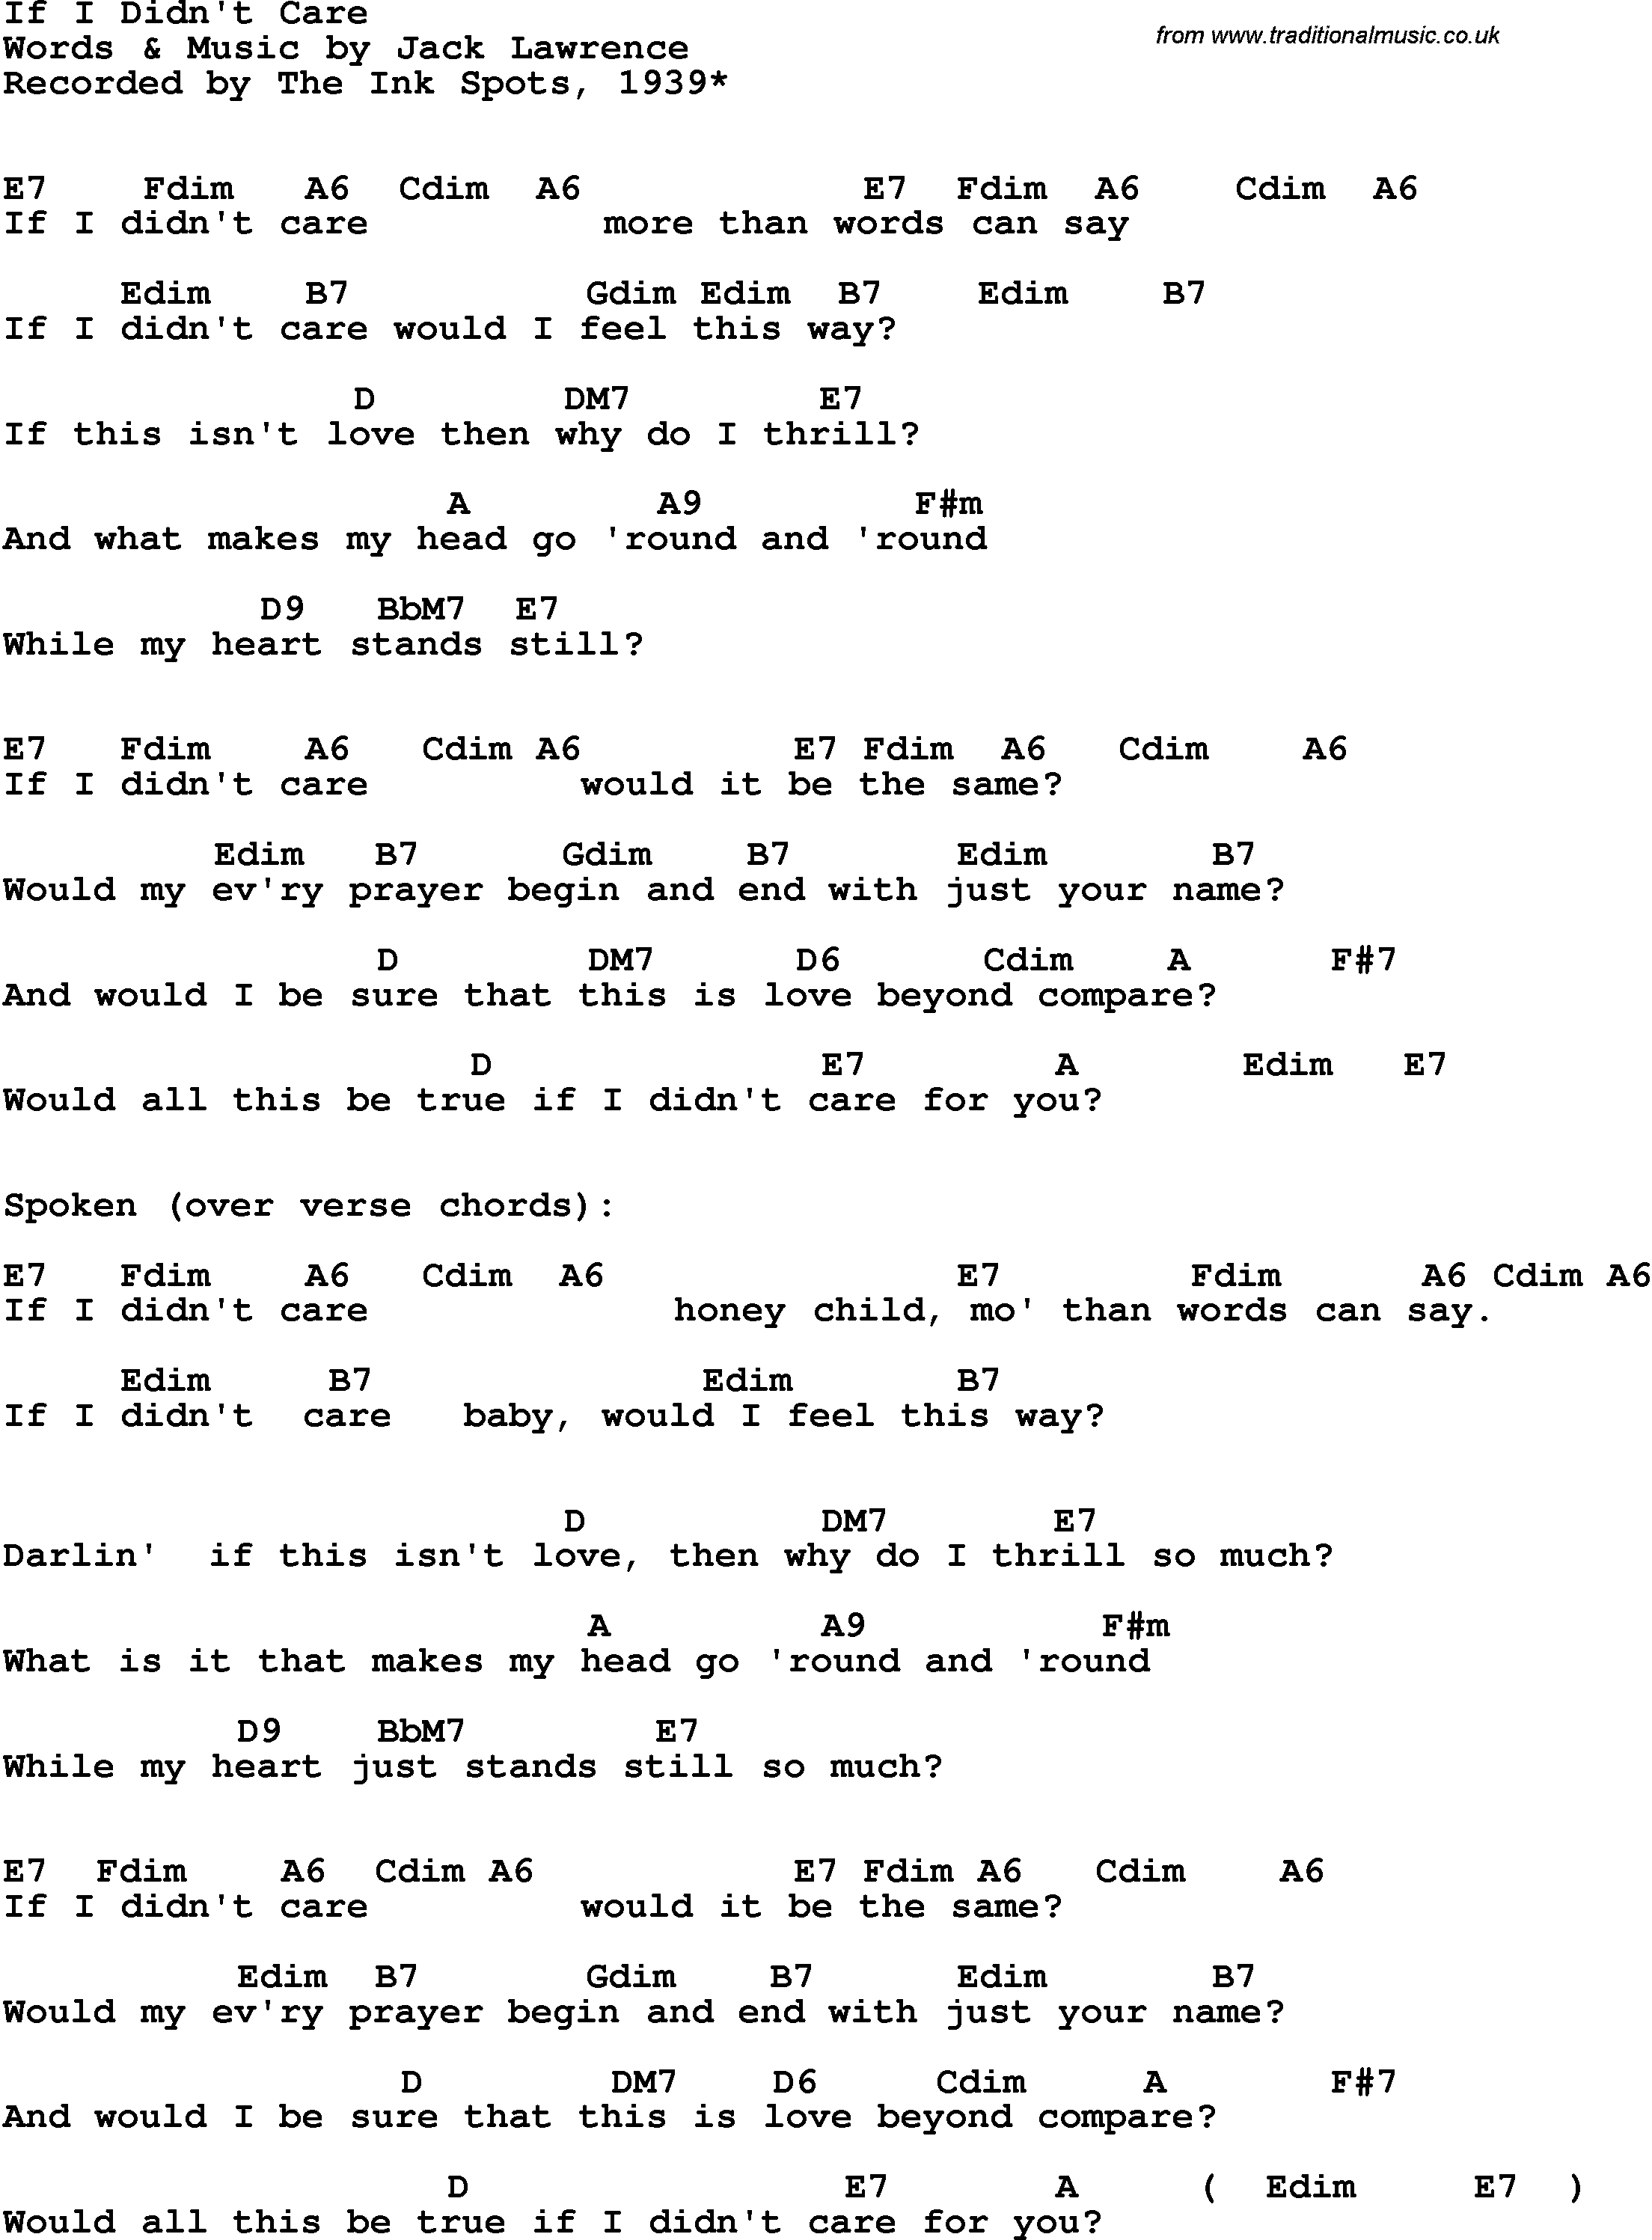 Song Lyrics With Guitar Chords For If I Didnt Care The Platters 1961